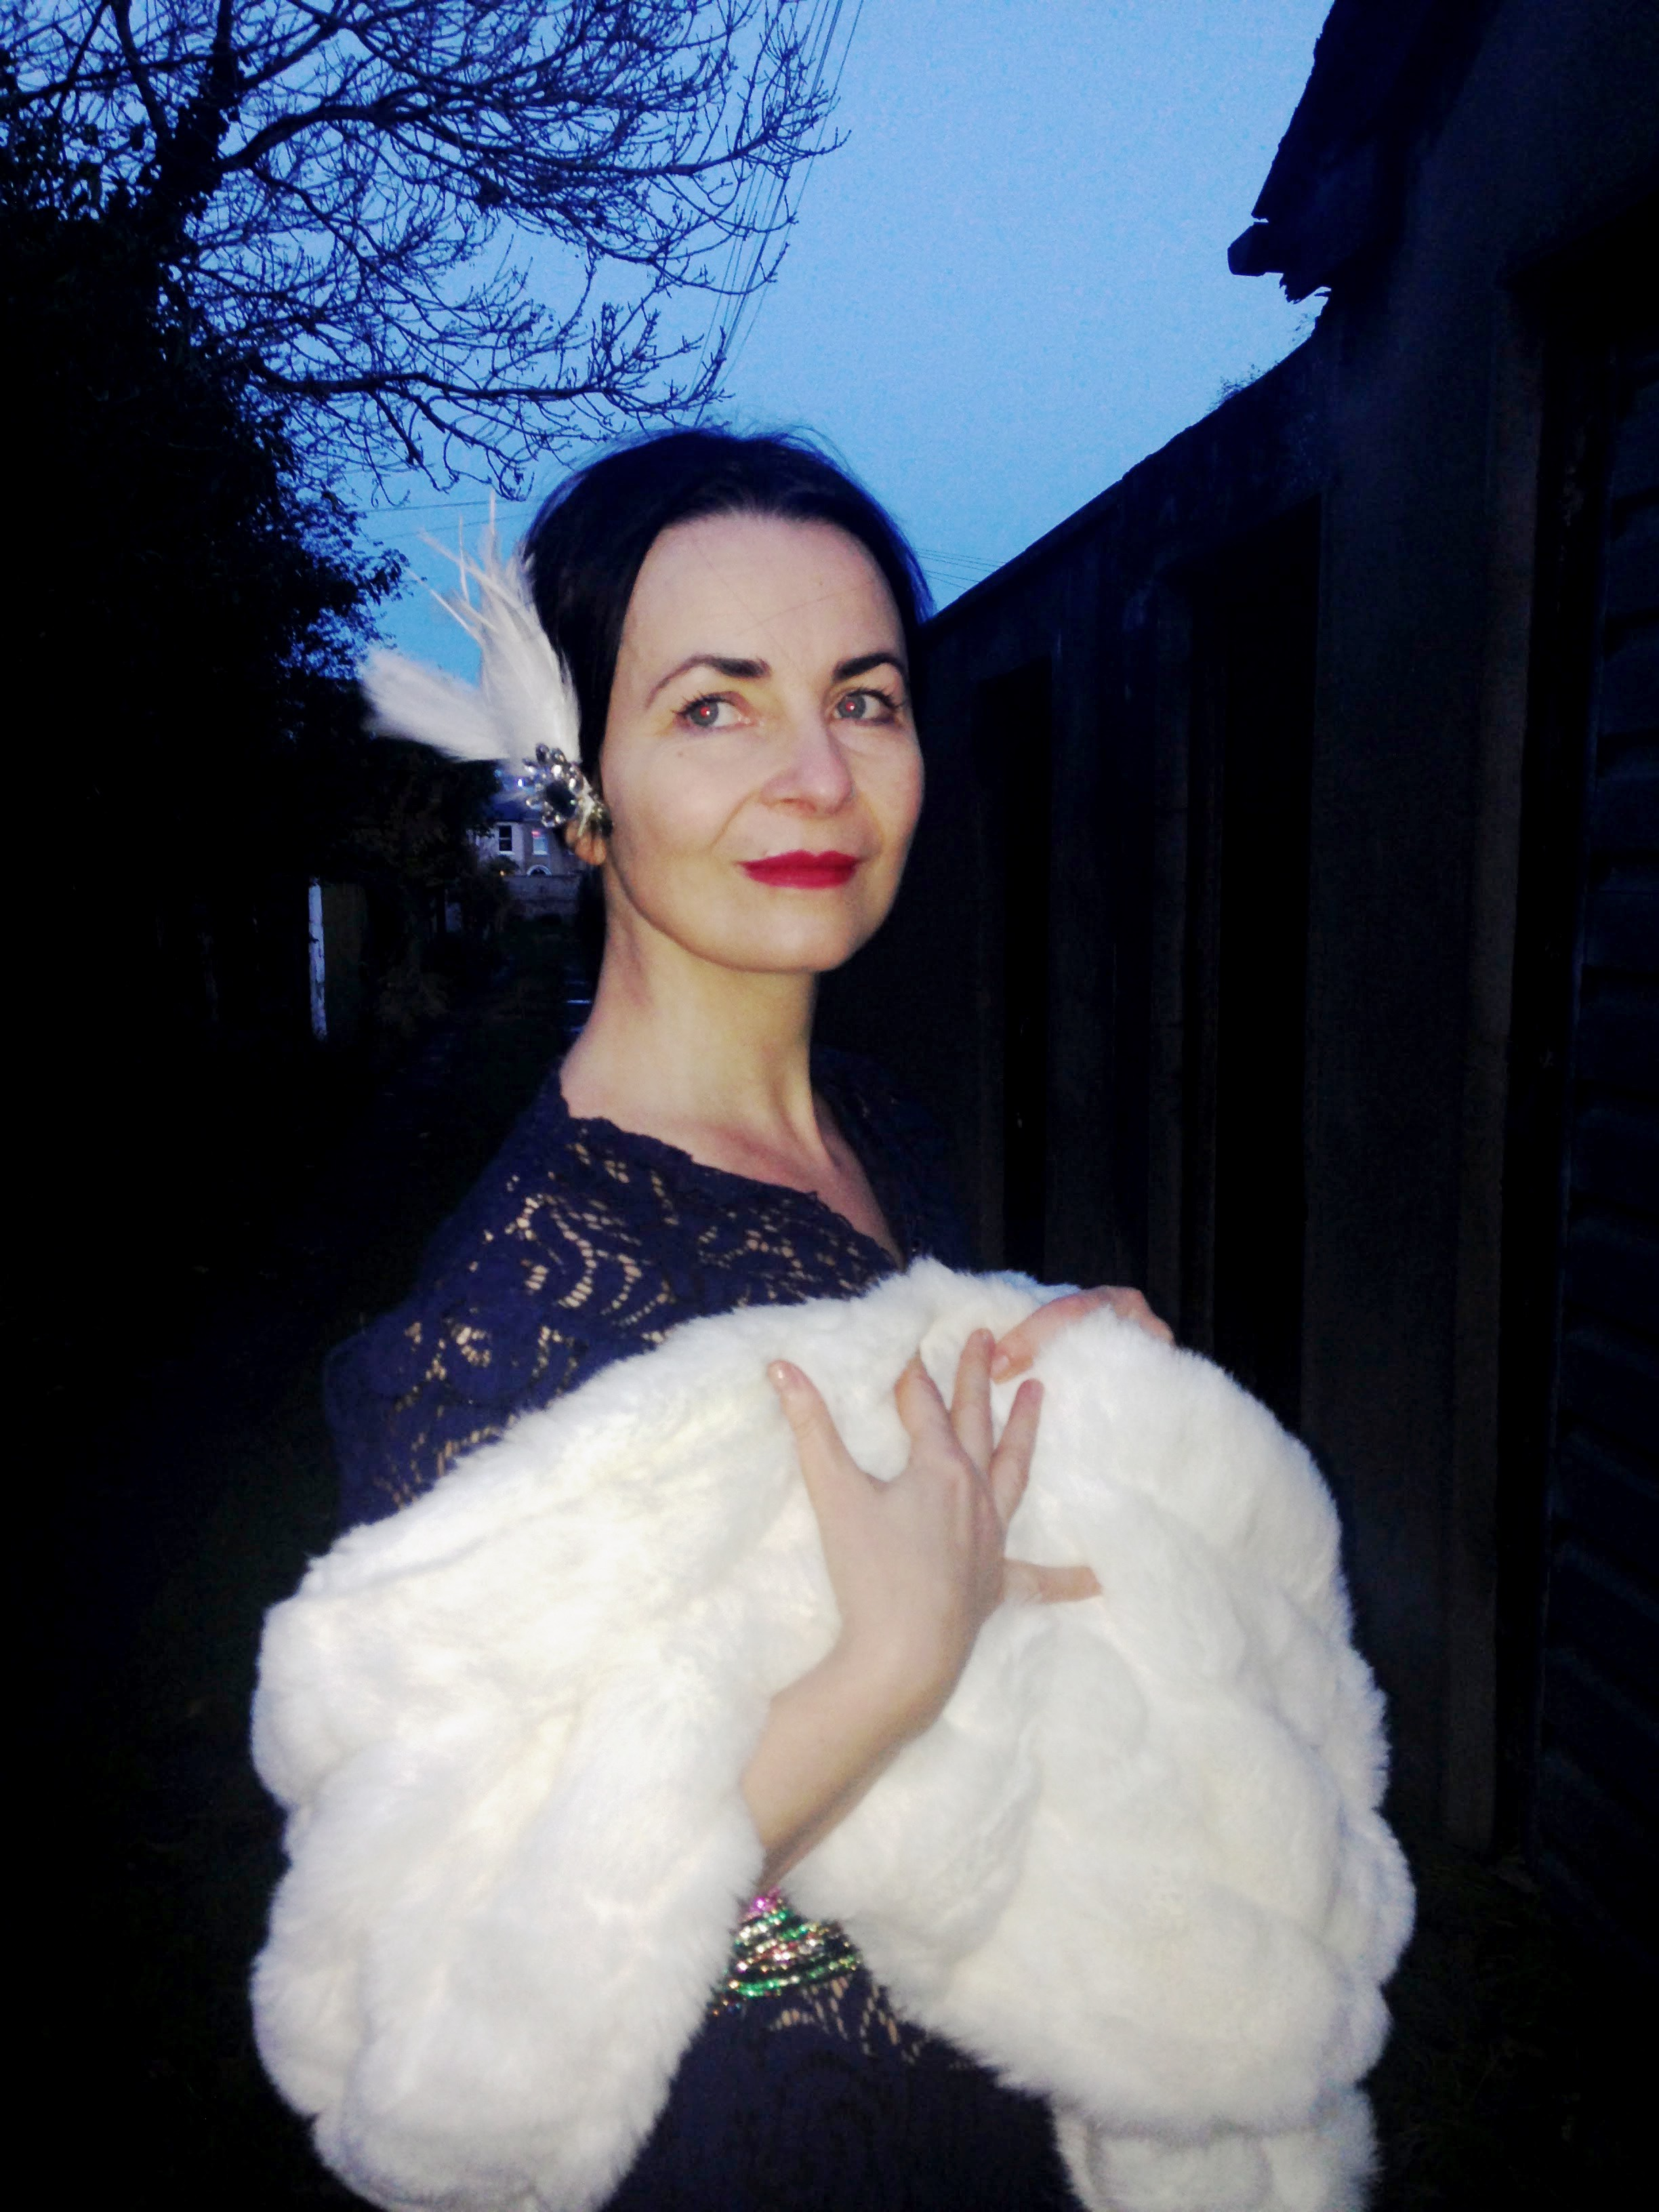 Magic Midnight Hour! Beautiful vintage lace 1930s dress paired with a winter white faux fur wrap and a quirky diamante and feather headpiece. Love this!